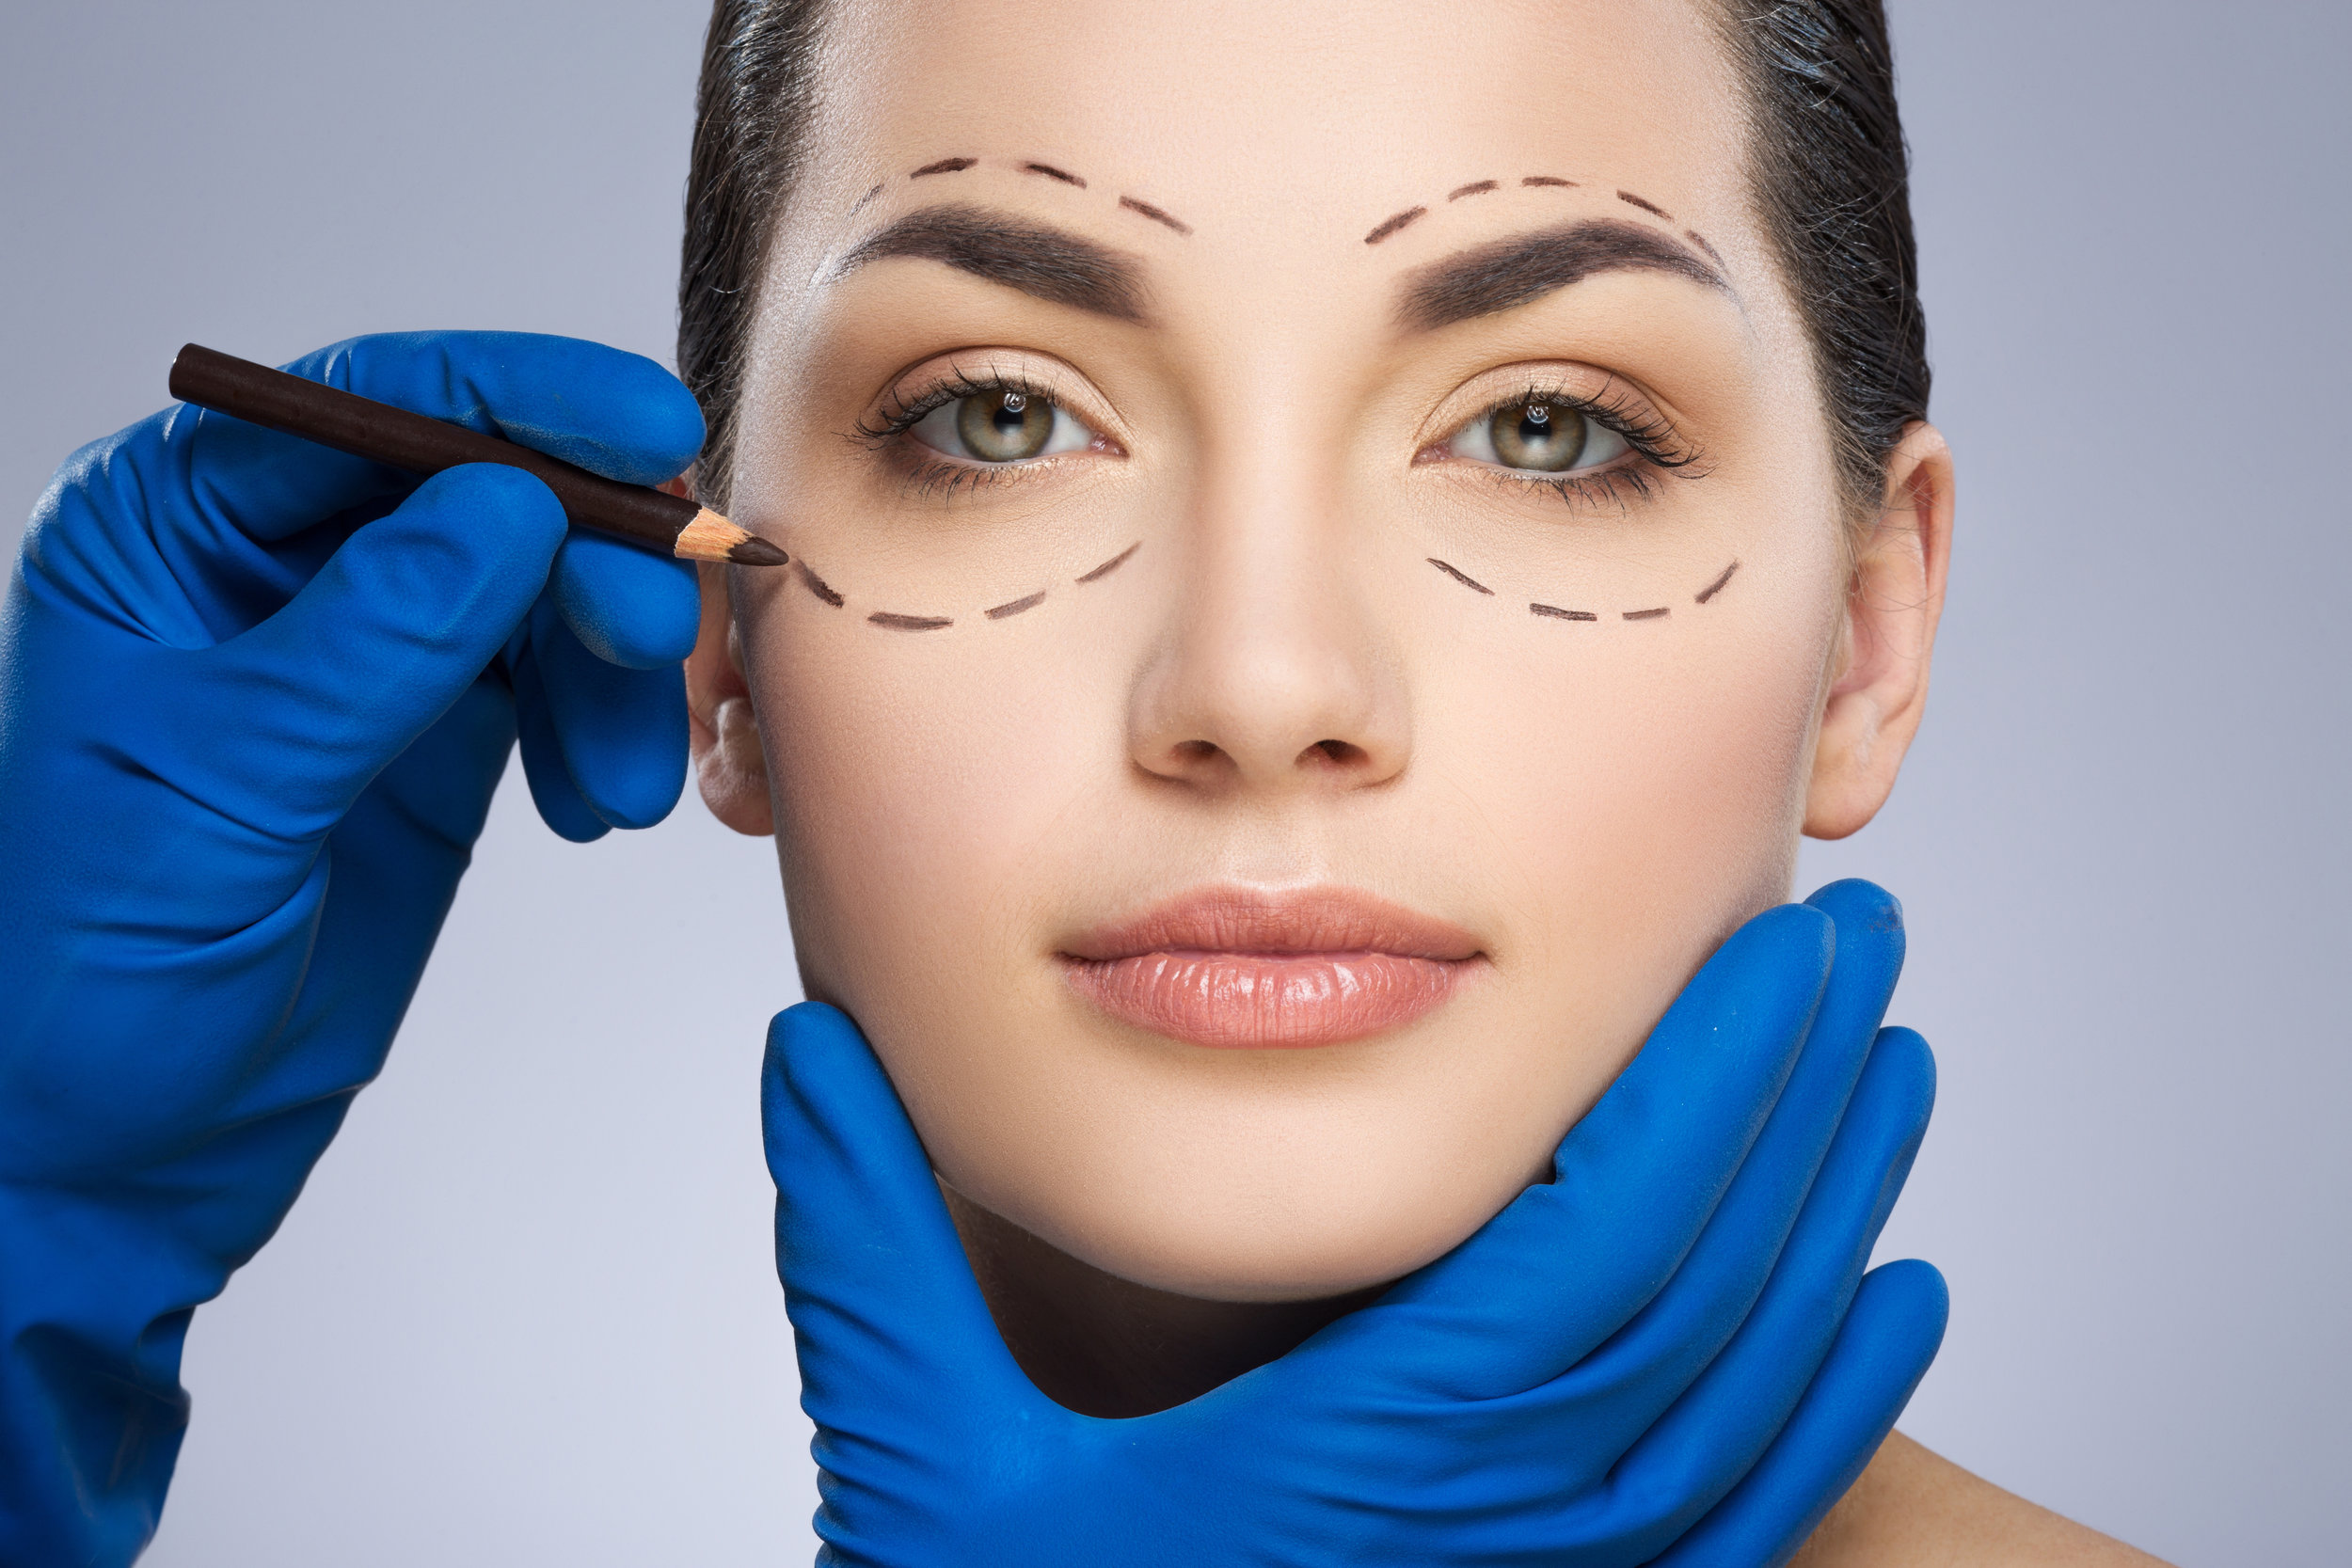 Youth is a gift from nature. Maintaining that youthful appearance is...   a work of art    Contact Us for Your Consultation